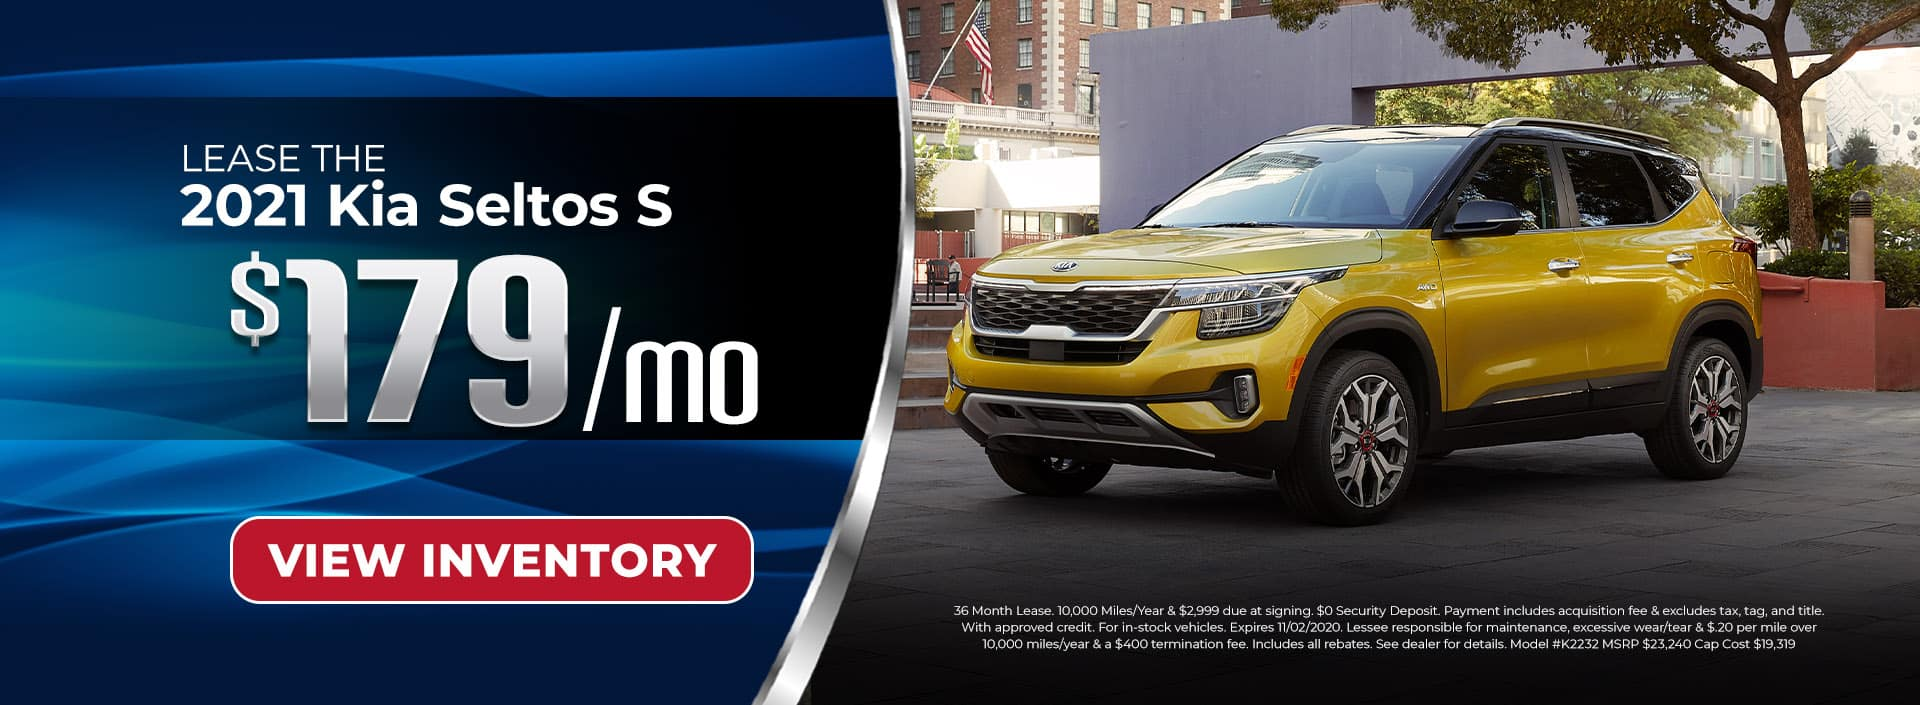 Lease 2021 Kia Seltos for $179/mo